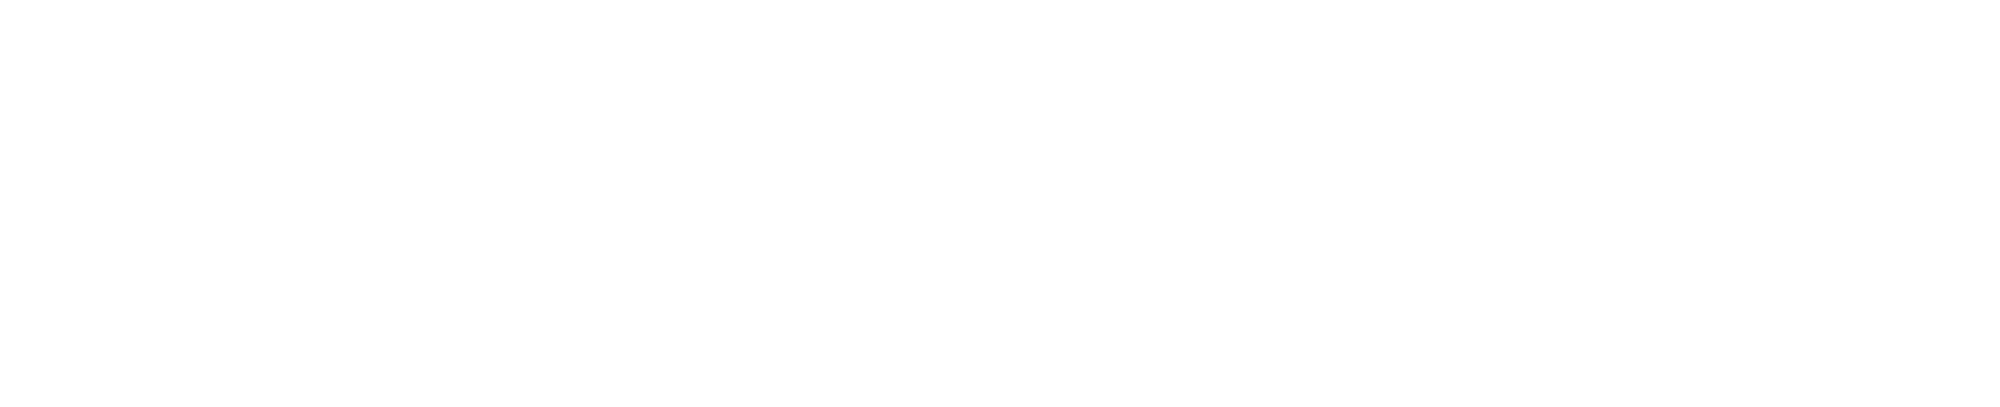 The Boston Institute of Finance